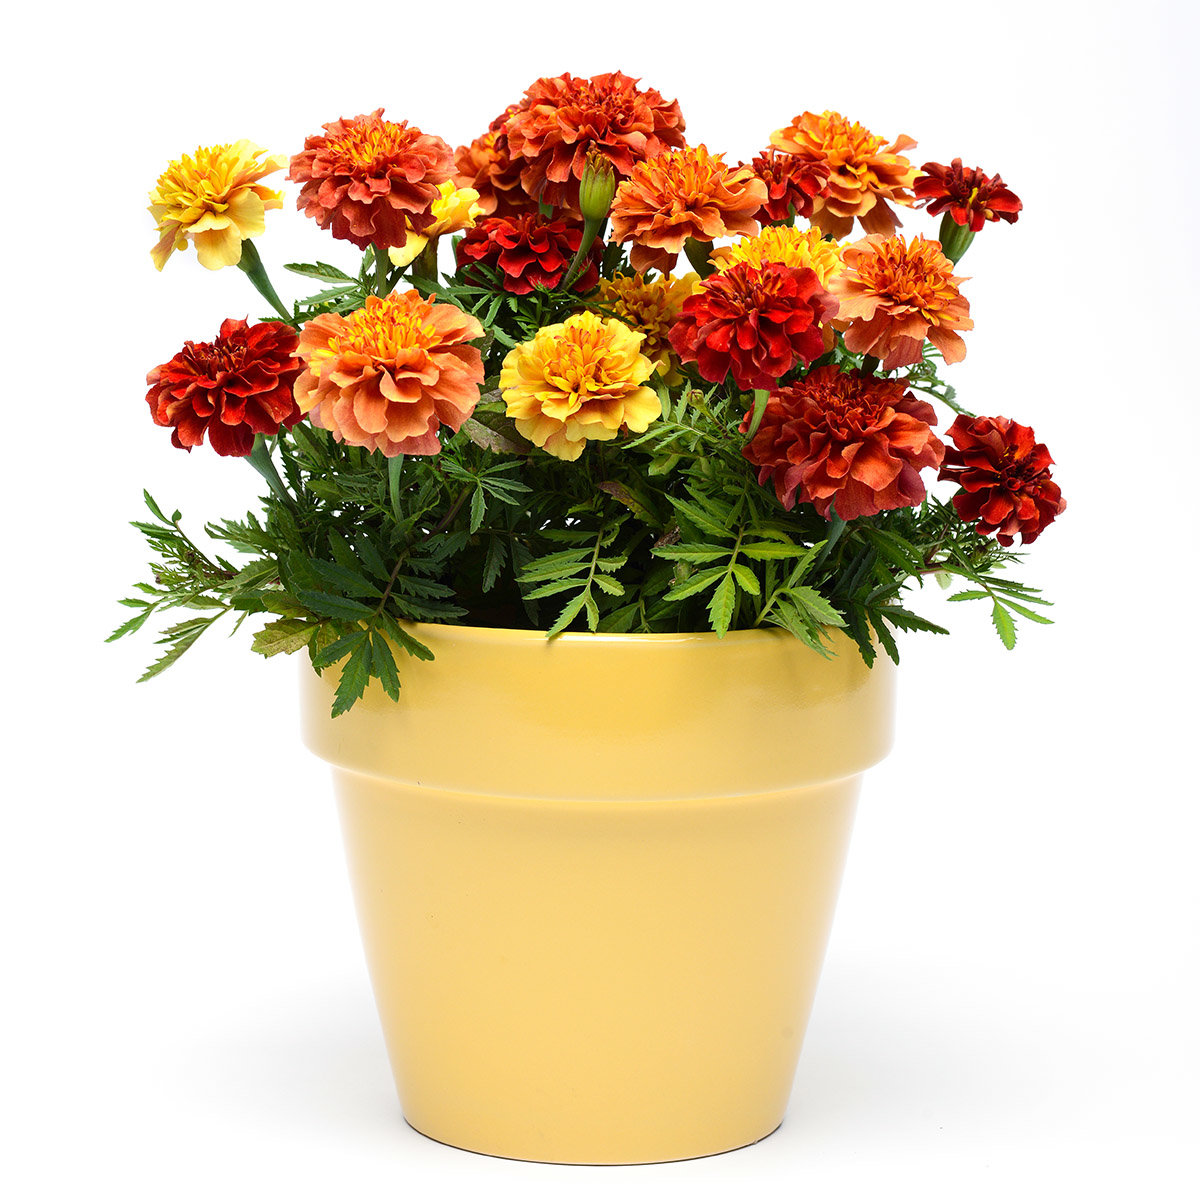 Tagetes Strawberry Blonde | #3